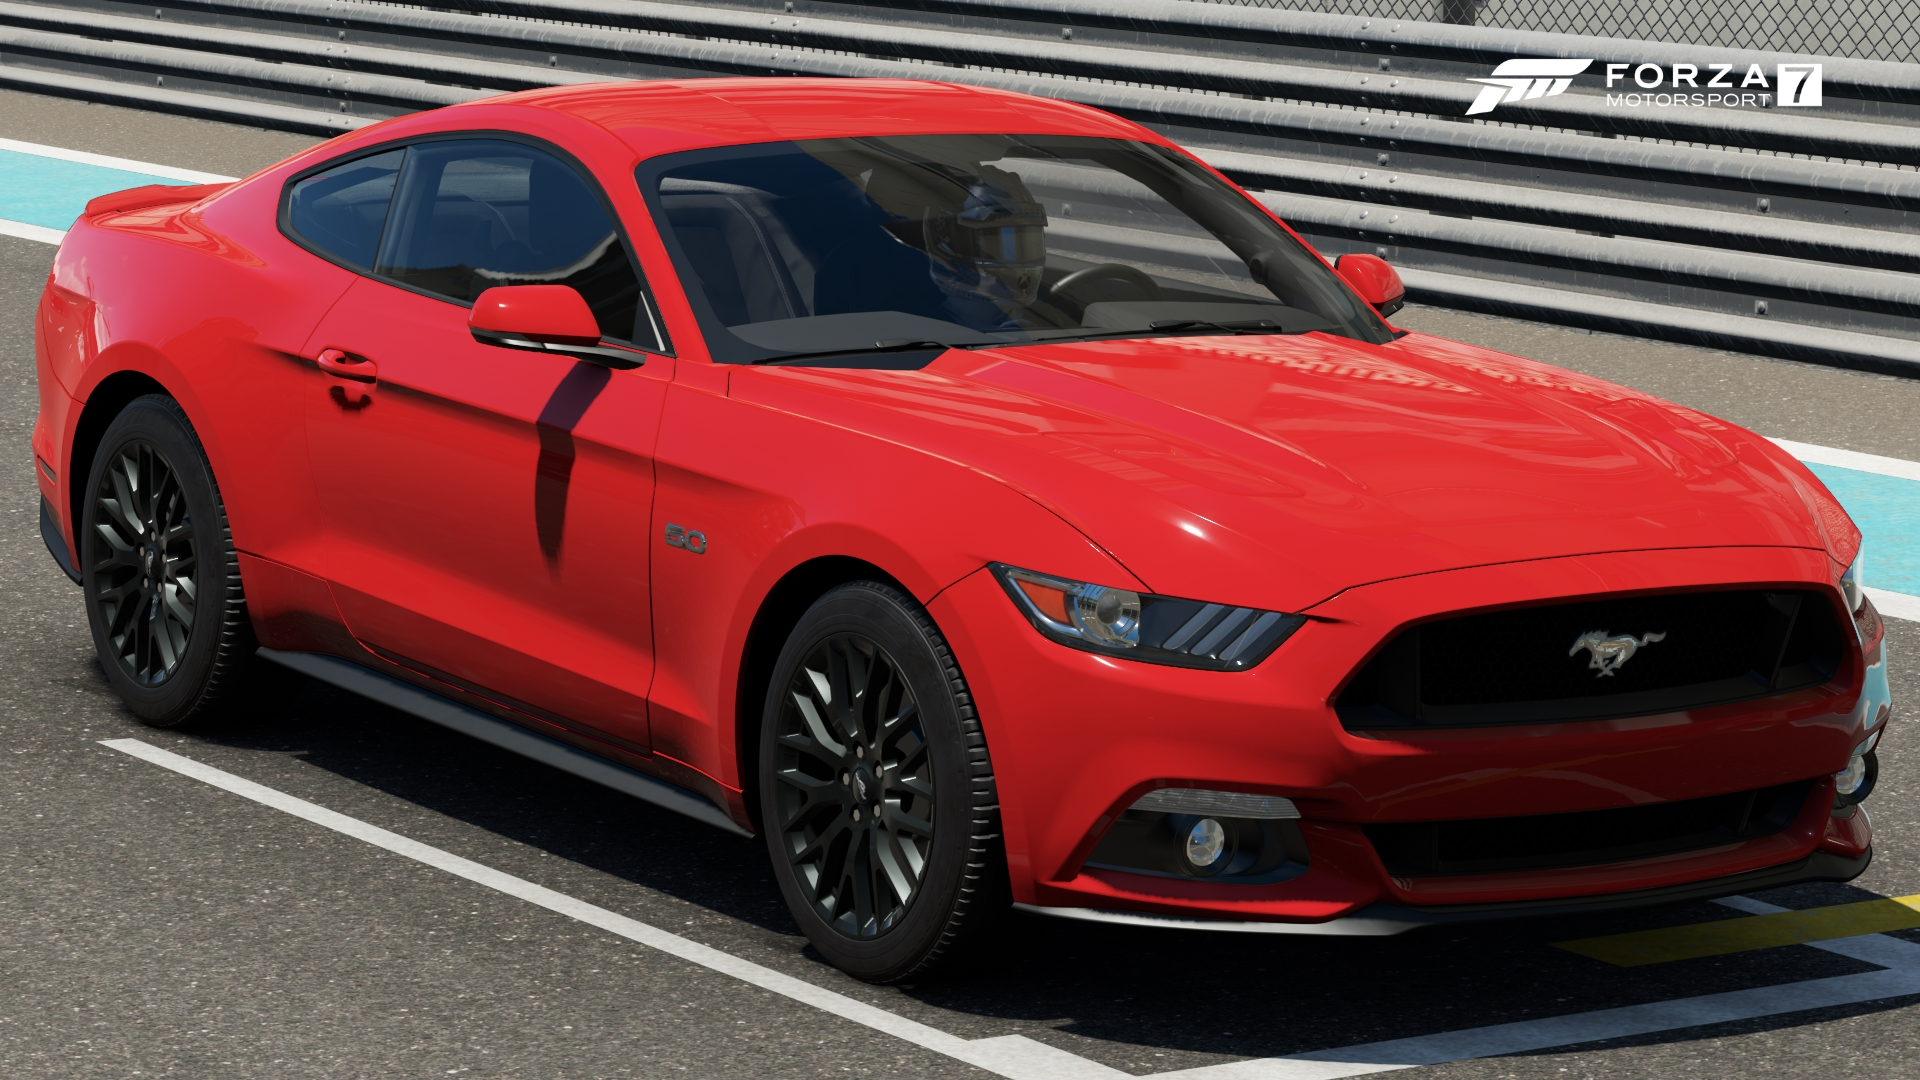 Ford mustang gt 2015 forza motorsport wiki fandom powered by wikia